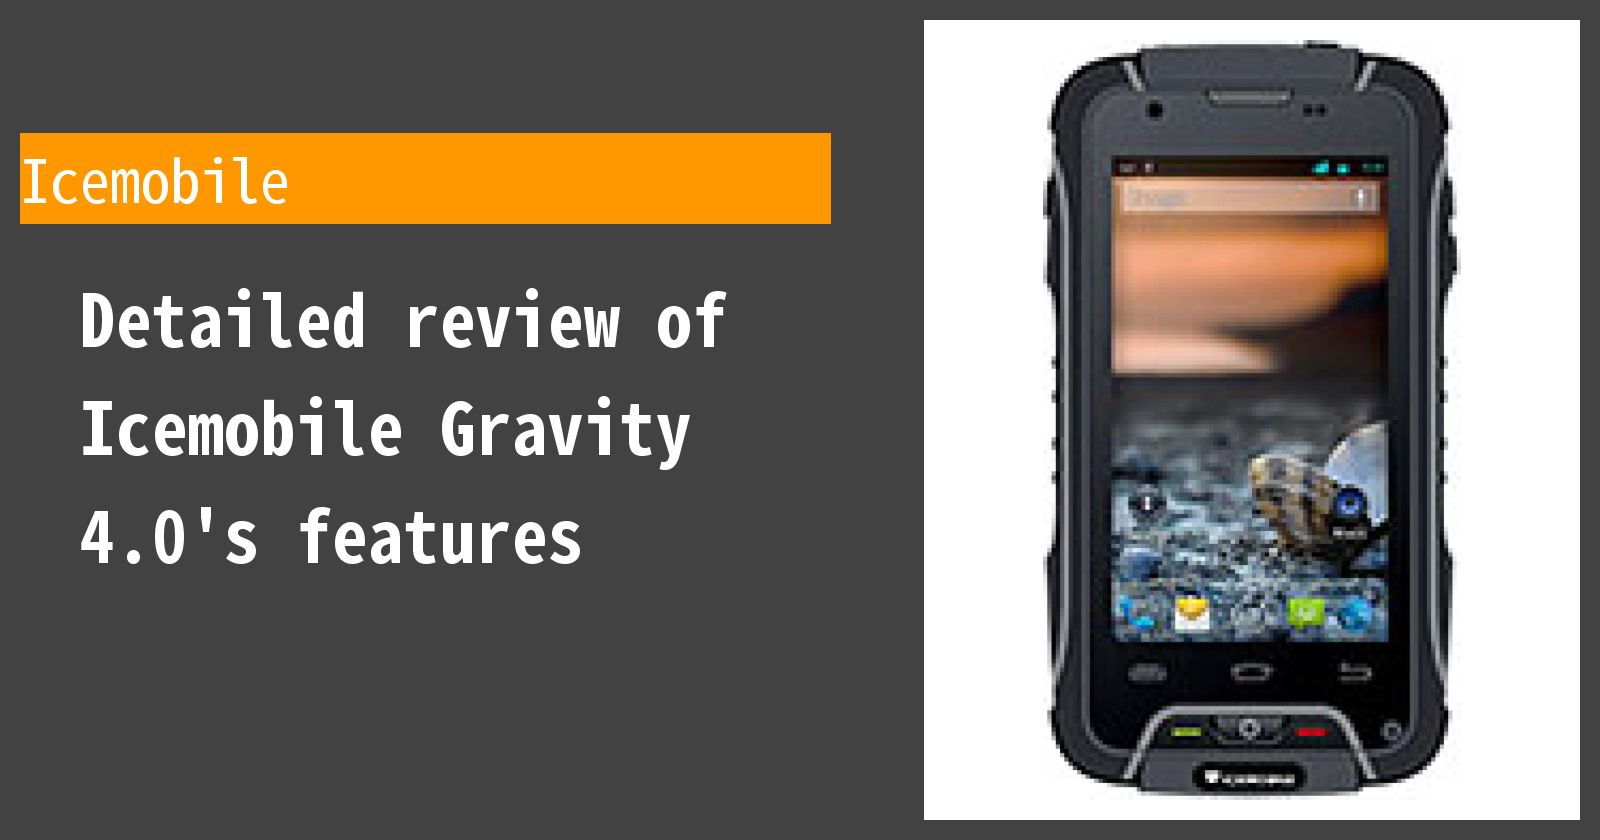 Detailed review of Icemobile Gravity 4.0's features